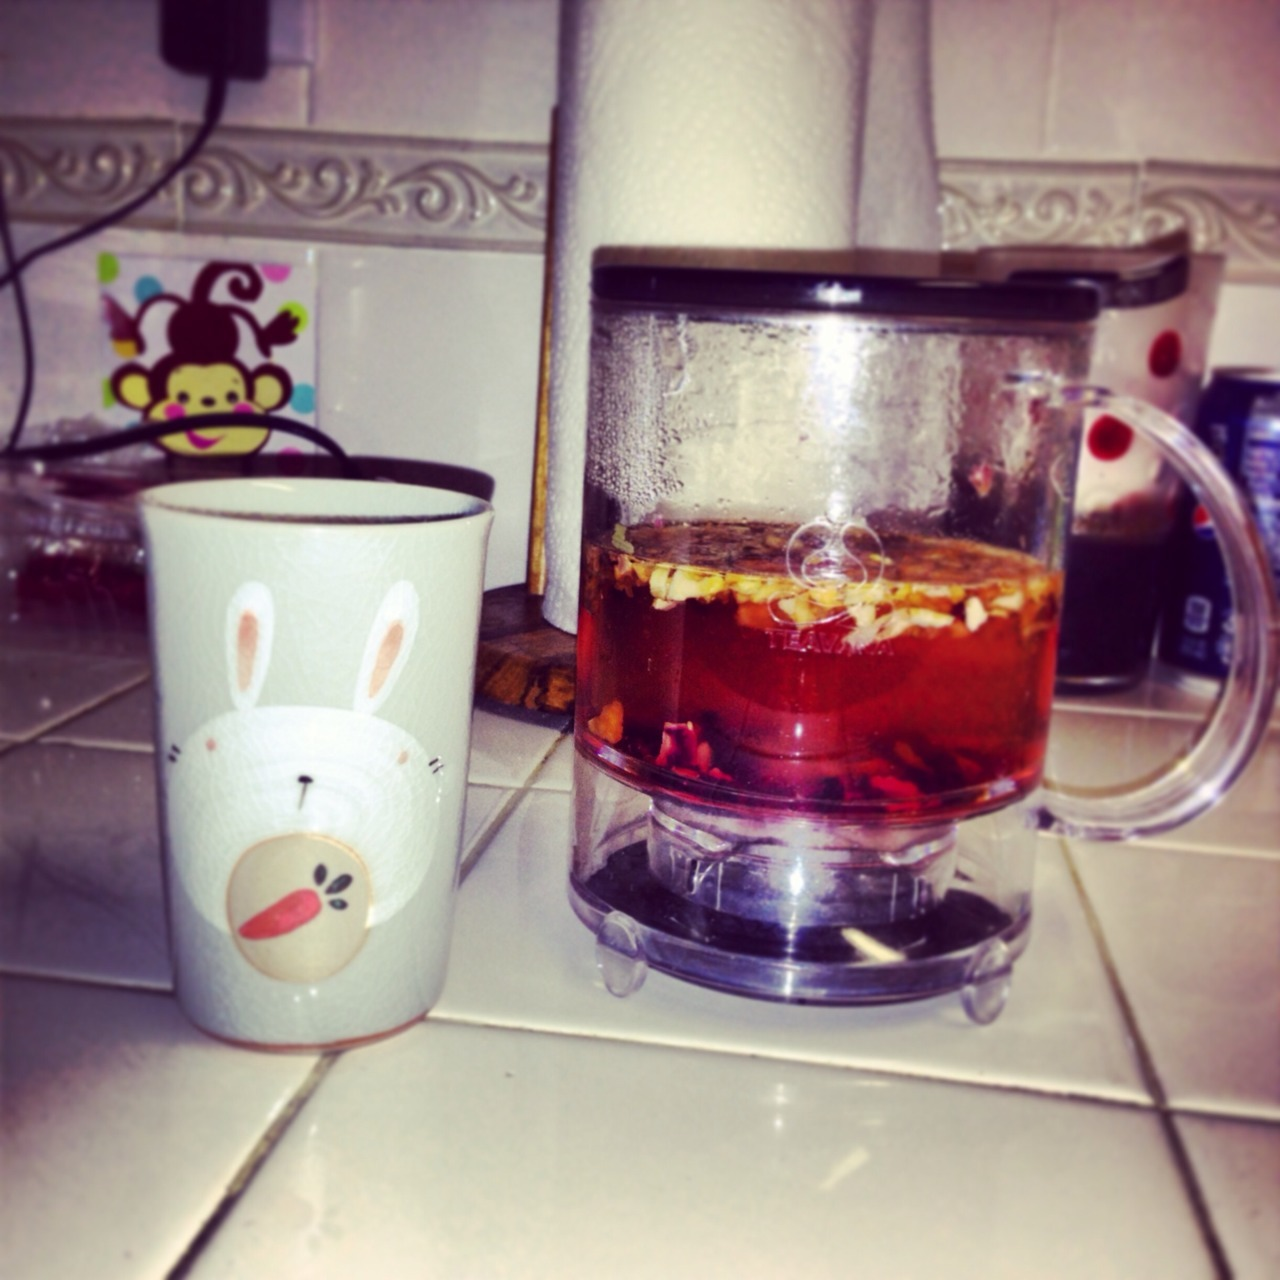 A little night time tea before bed. This spiffy little teacup was in my Easter basket, my boyfriend knows me so damn well!